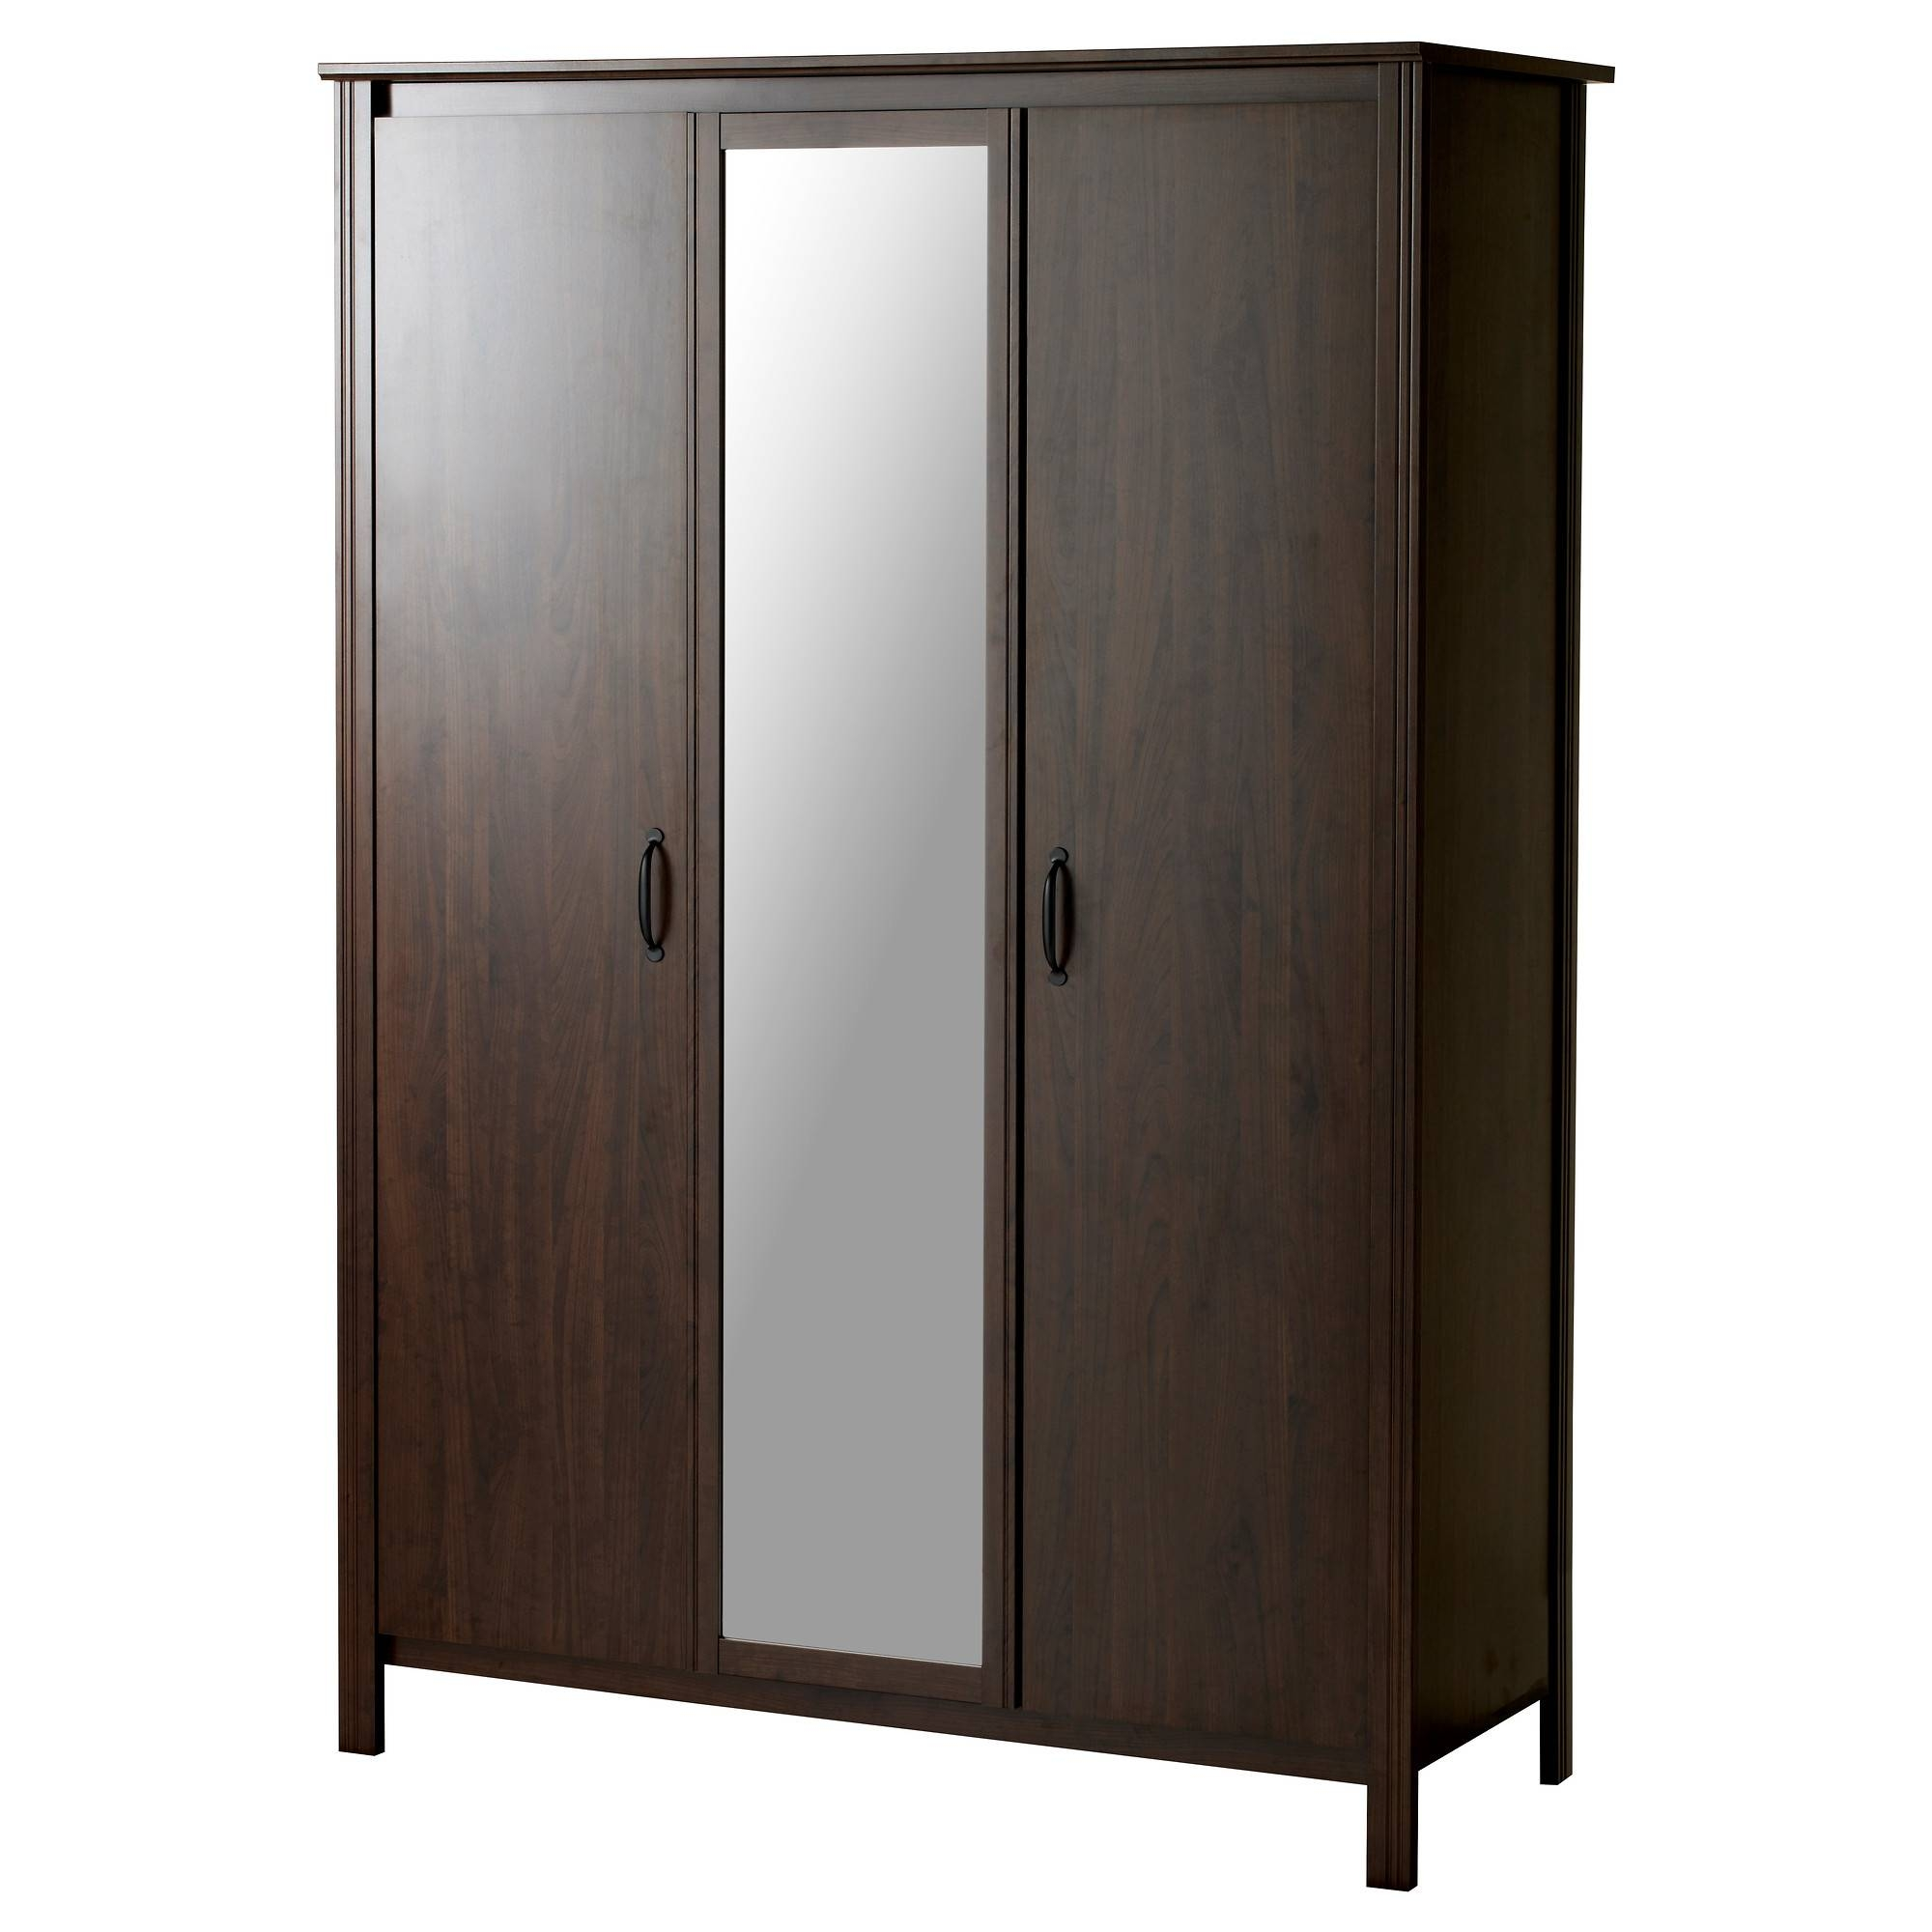 Wardrobes, Armoires & Closets - Ikea with Wardrobes 4 Doors (Image 14 of 15)